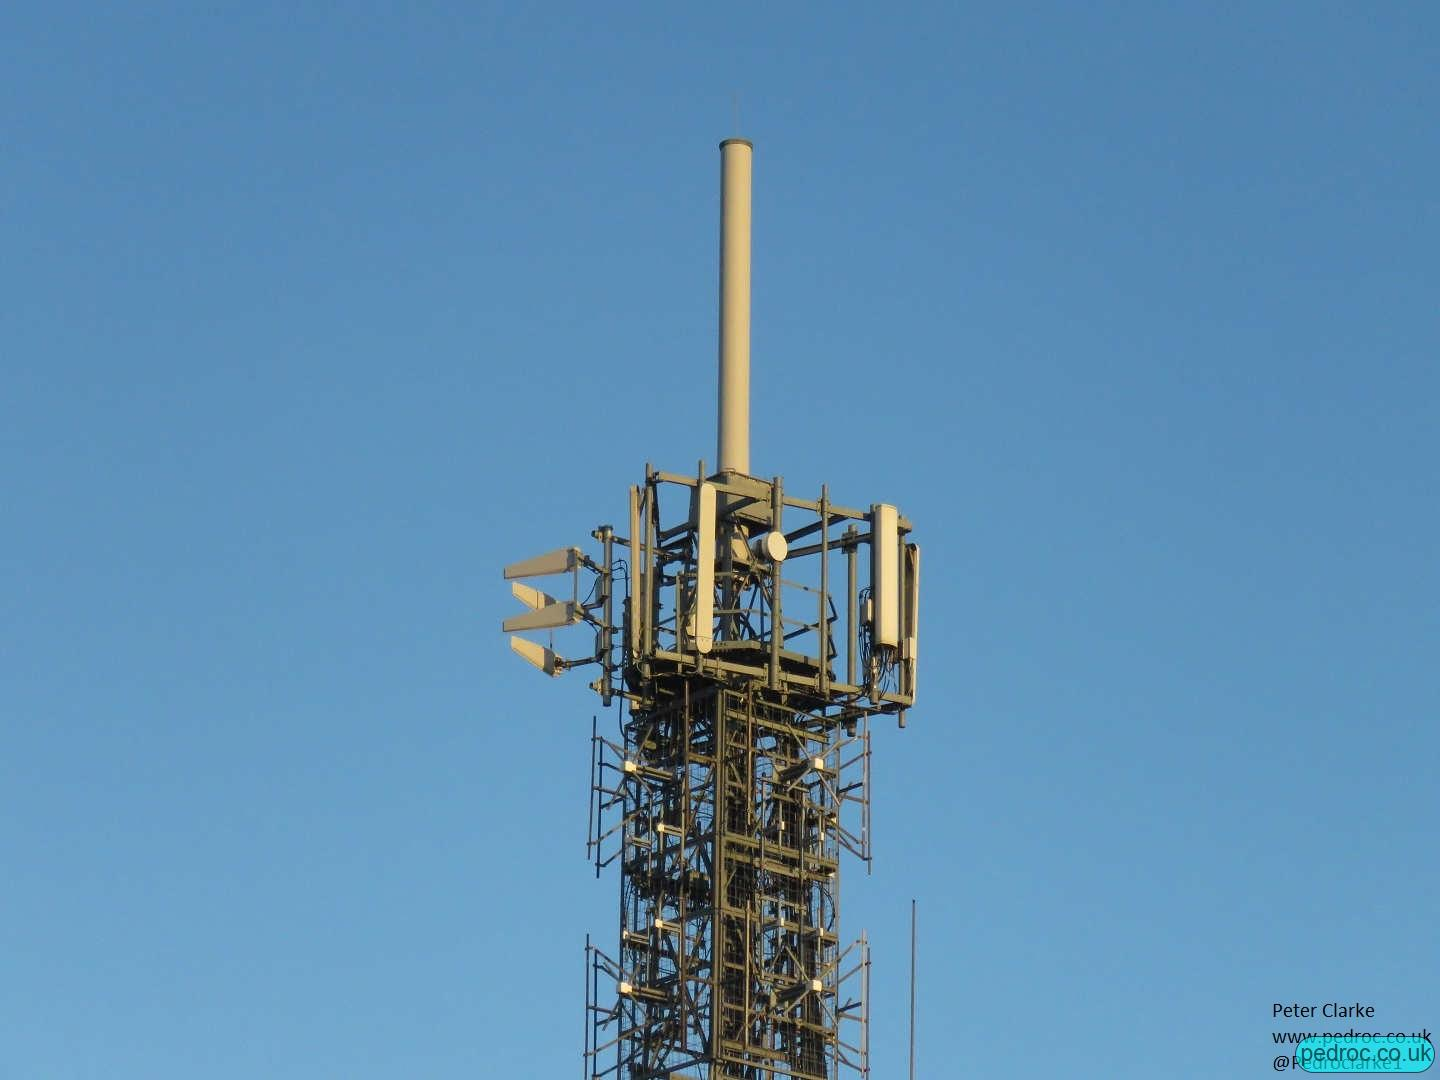 Scarborough Oliver's Mount UHF Mast top view with TV, radio and EE/3 and legacy VF cellular operators.